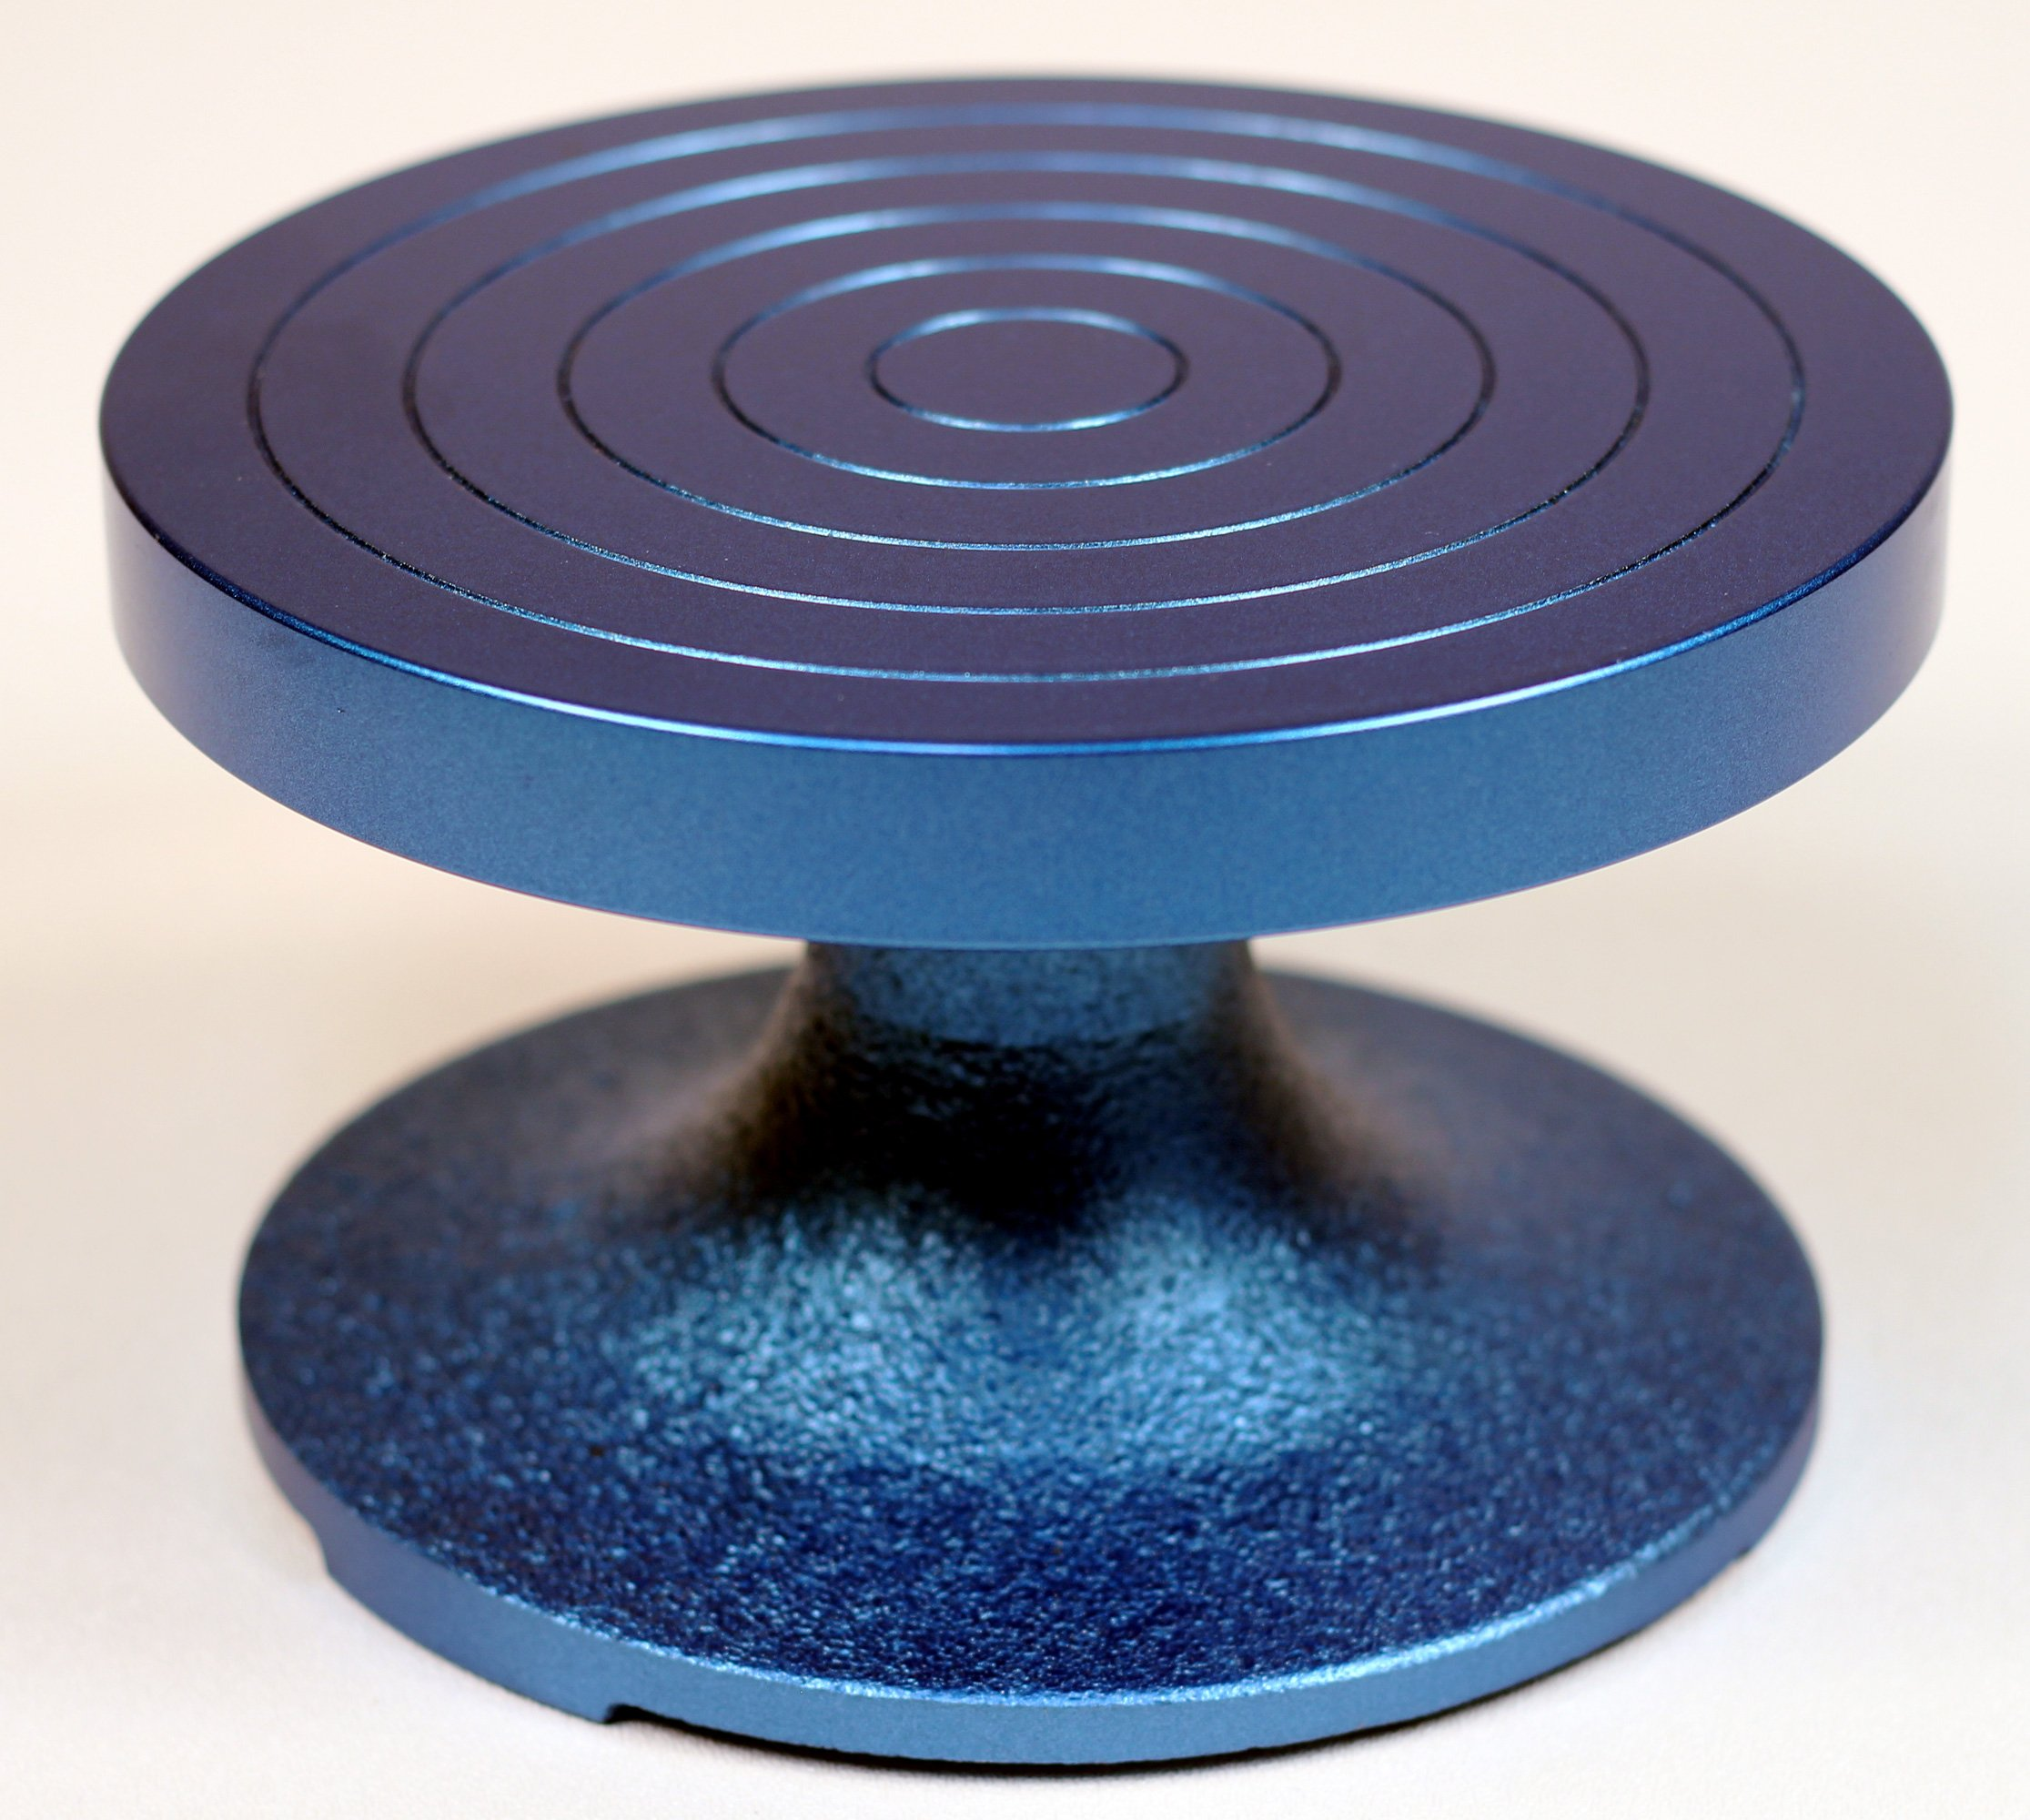 Creative Hobbies BW-18M Professional Sculpting Wheel 7 Inch Diameter, Heavy Duty Solid Cast Iron, Blue Color